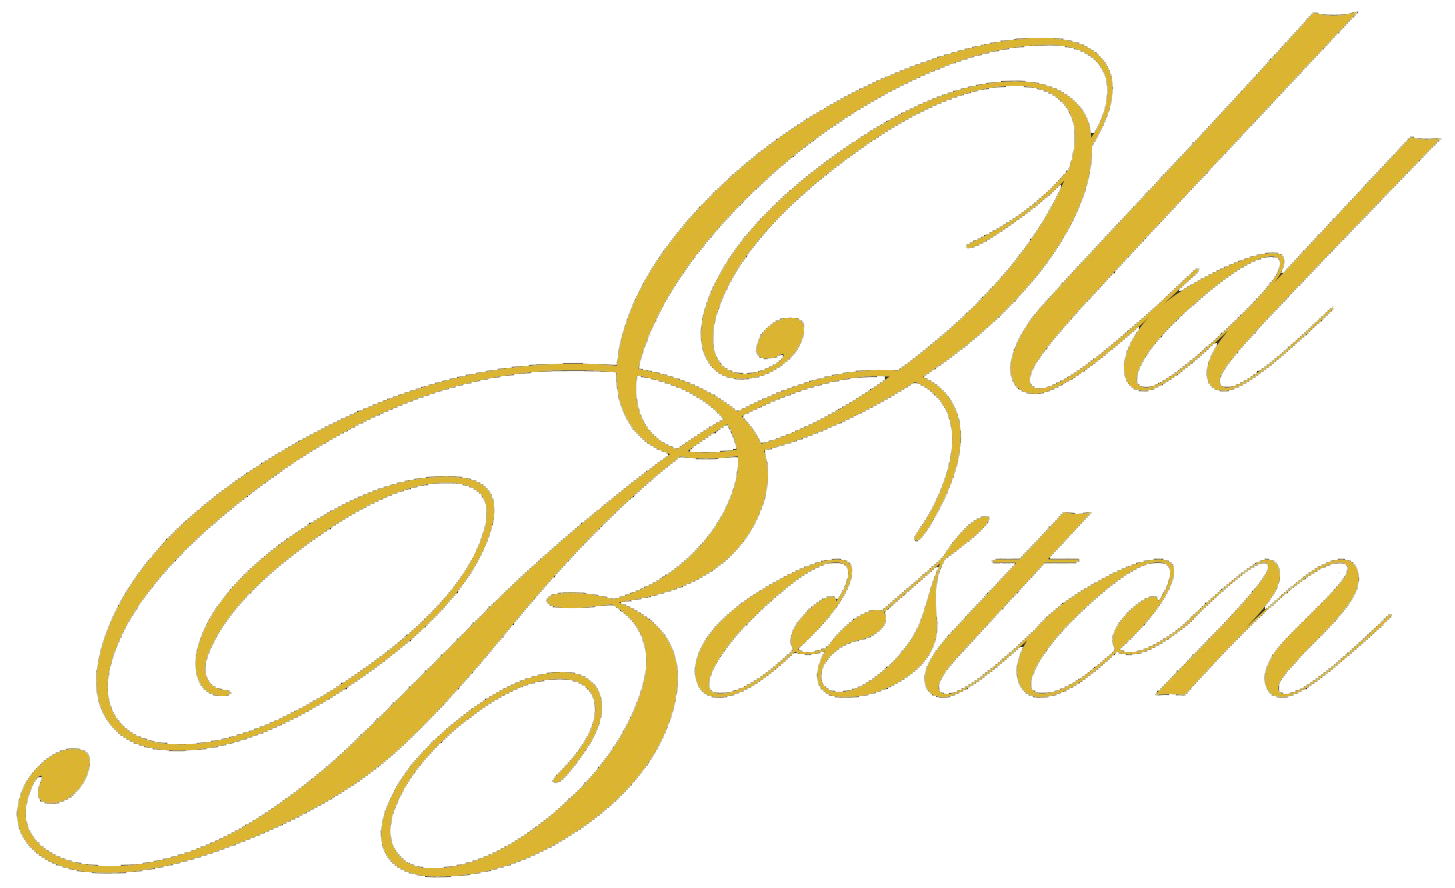 Old Boston, Interior Architectural Restoration and Renovation